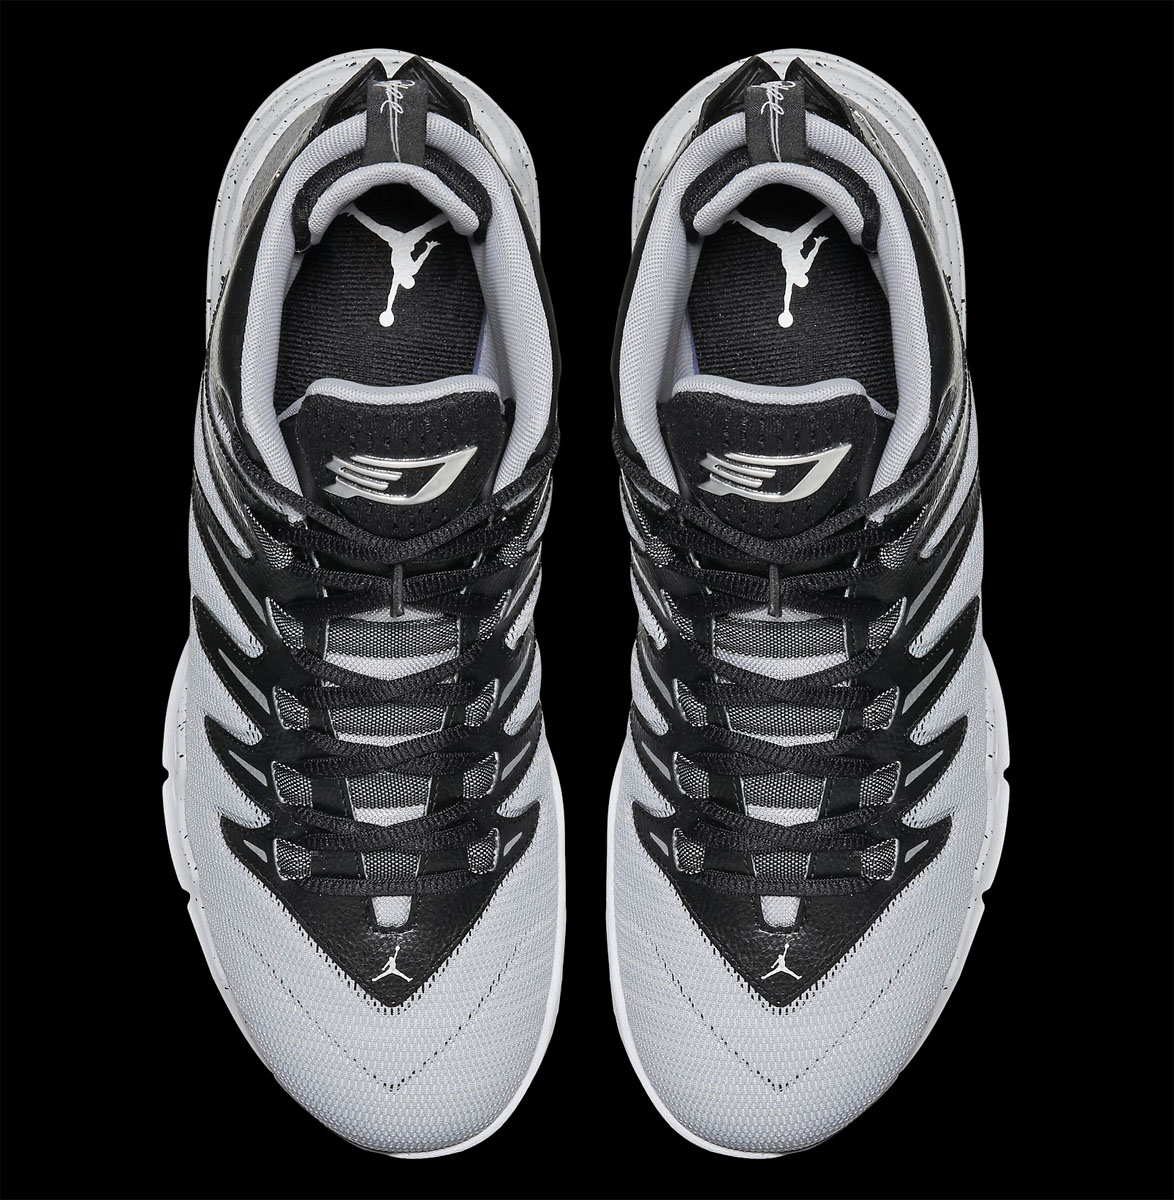 Jordan CP3.IX Black/Wolf Grey-Pure Platinum-Metallic Silver (5)